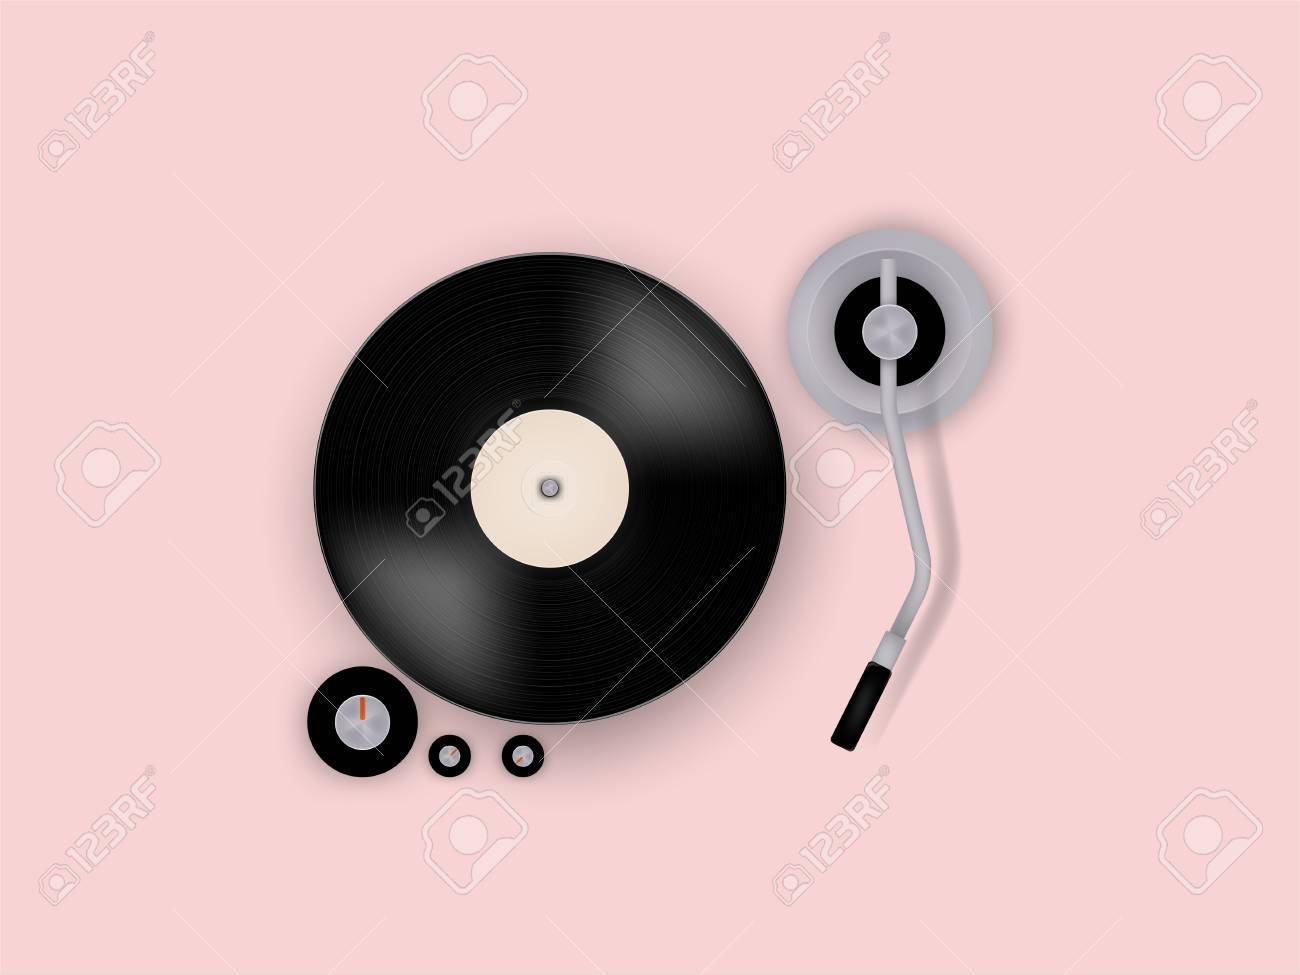 graphic design vector of gramophone vinyl record on record player royalty free cliparts vectors and stock illustration image 68477900 graphic design vector of gramophone vinyl record on record player